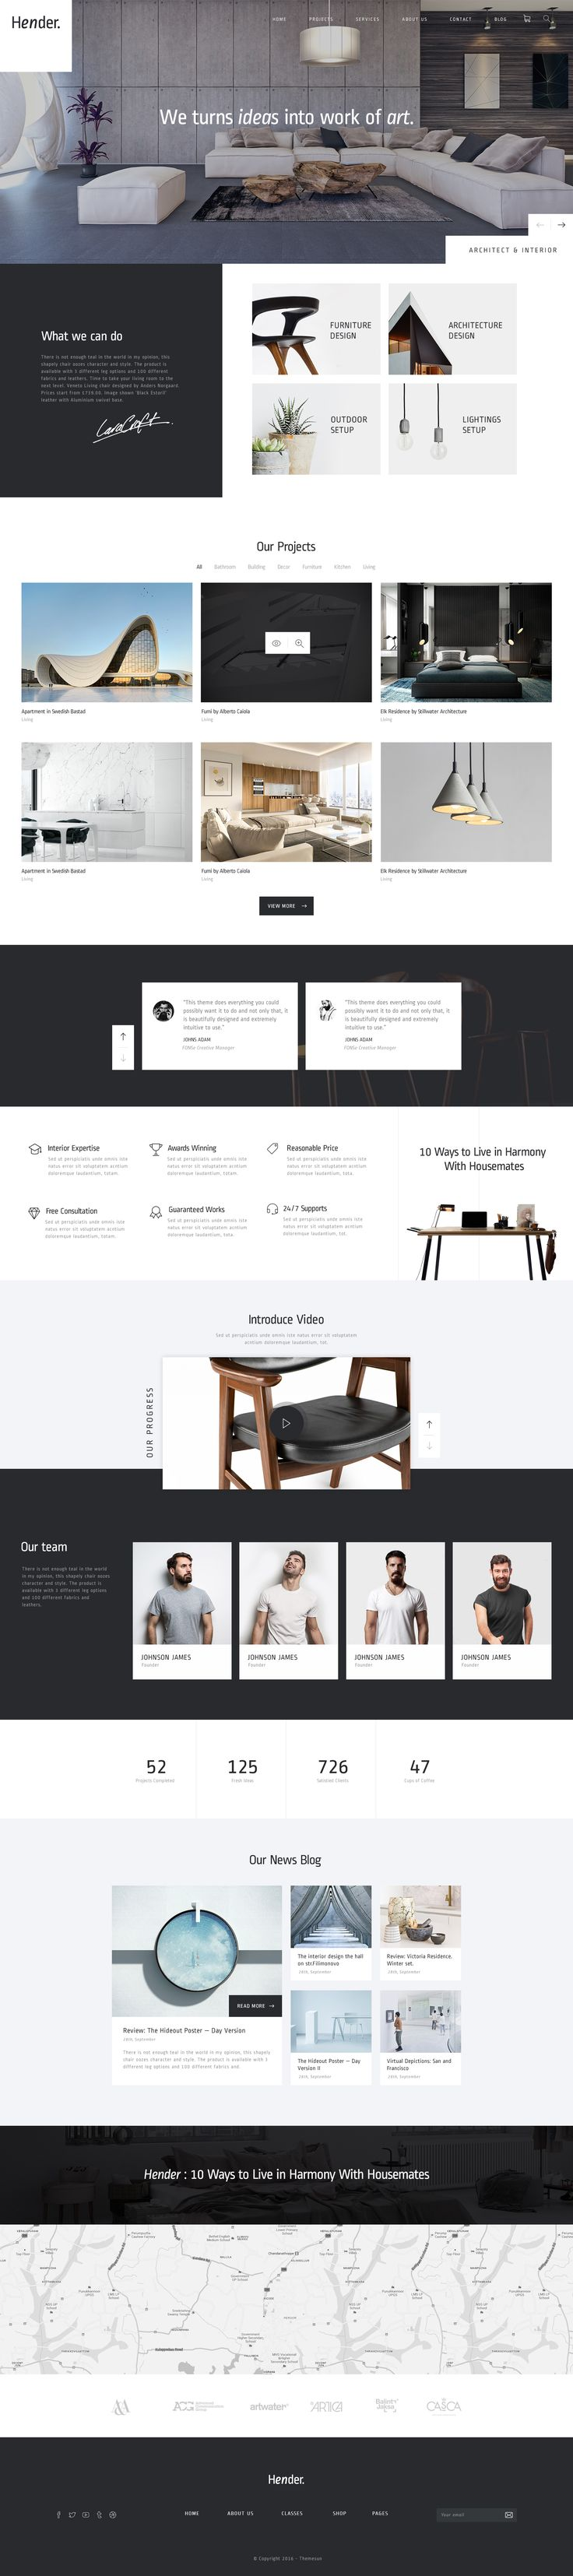 Hender – Architecture and Interior Design Agency PSD Template Hender is a clean and clear PSD template designed exclusively for Architecture and Interior Design Agency. Feel free to choose your fa...